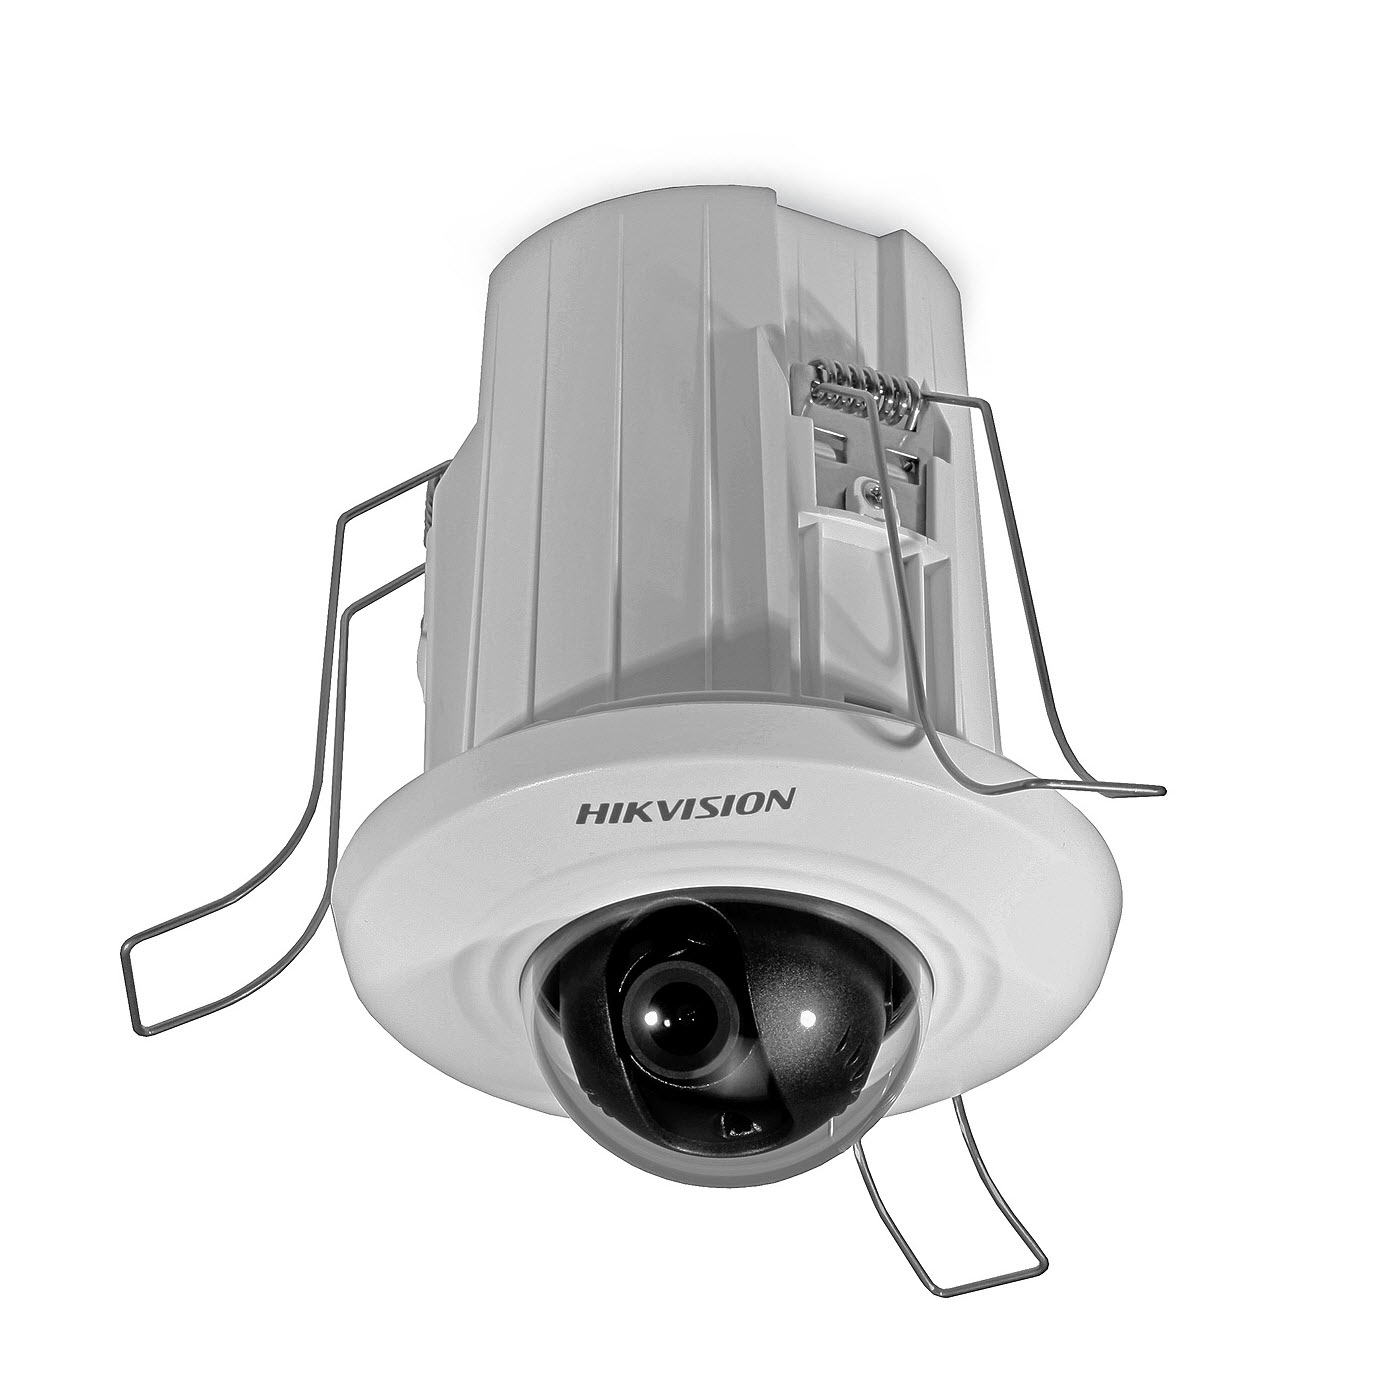 Hikvision DS-2CD2E10F-W 1.3MP Recessed Mount Dome